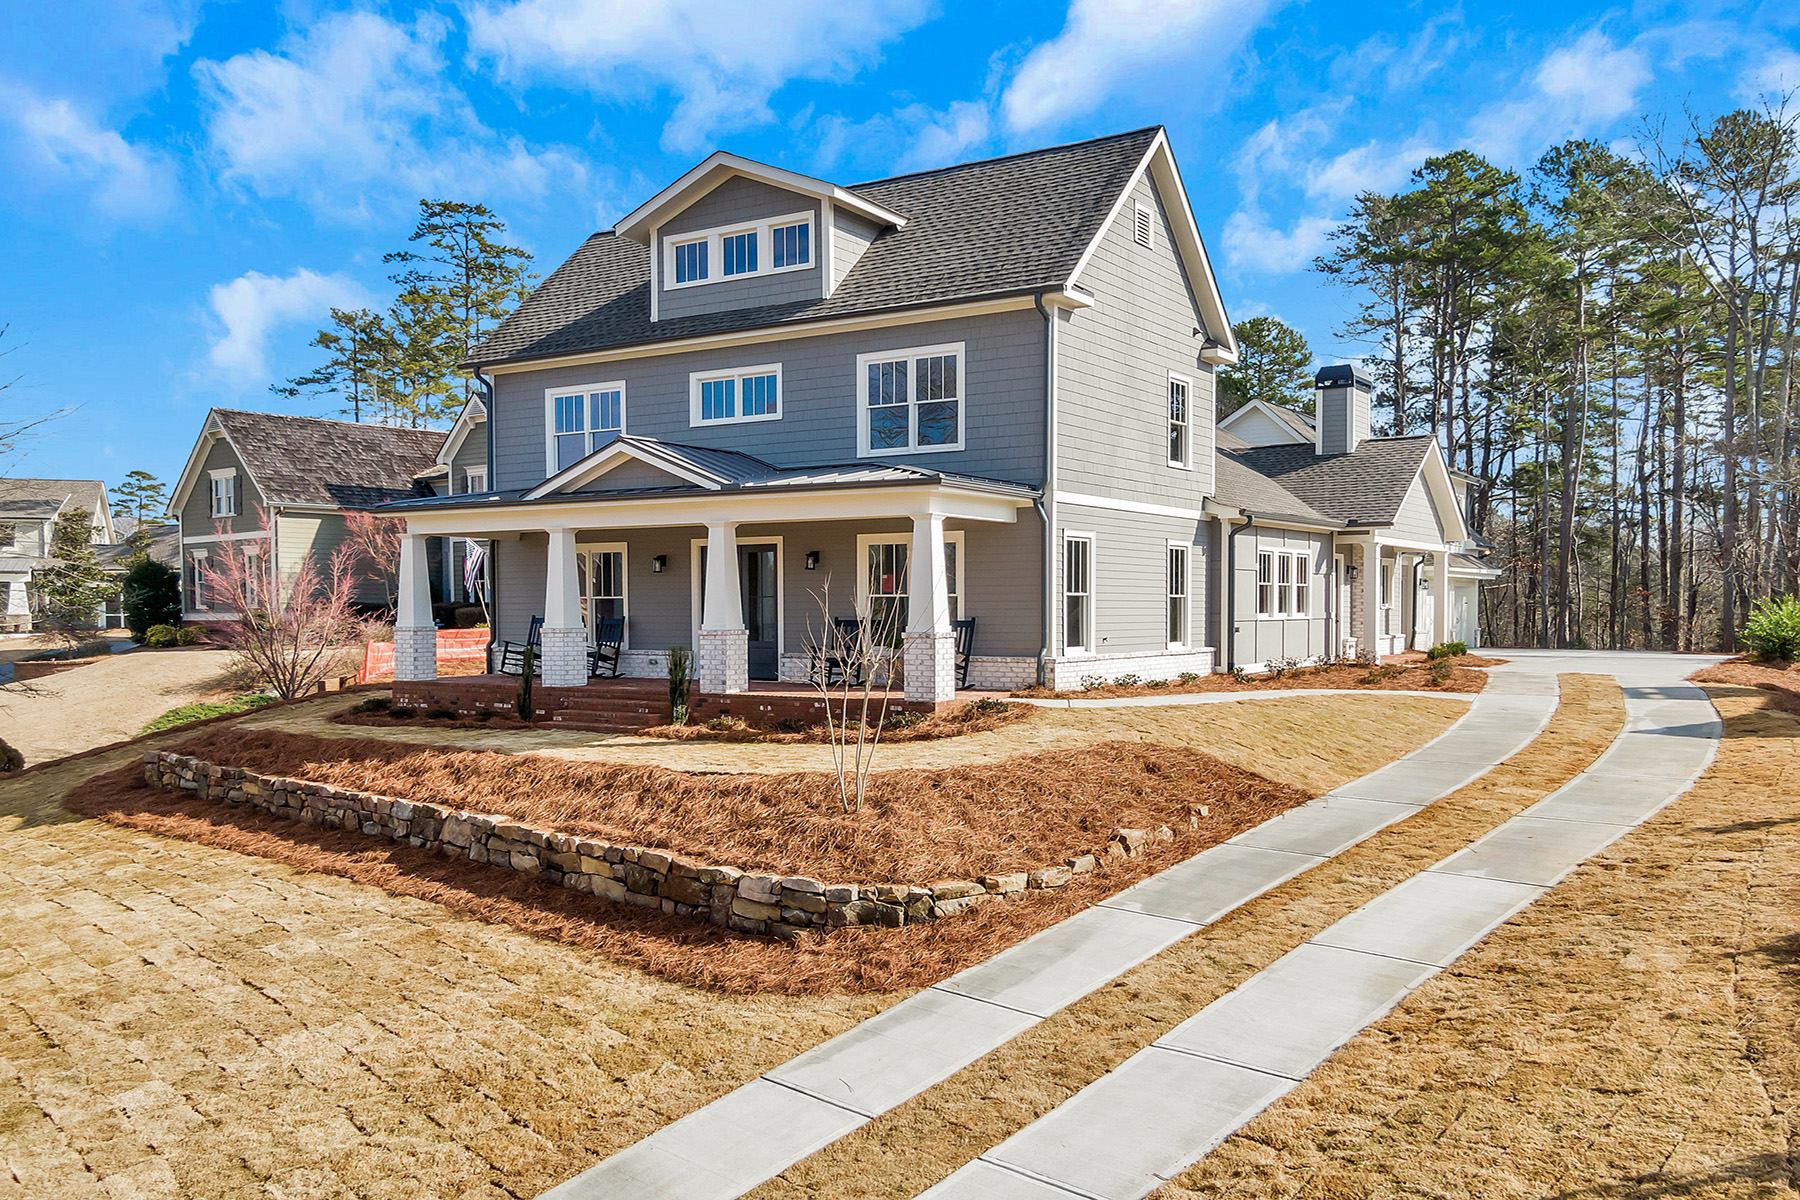 Single Family Homes for Active at Stunning Craftsman-style new construction in Chestatee 24 Fieldstone Court Dawsonville, Georgia 30534 United States